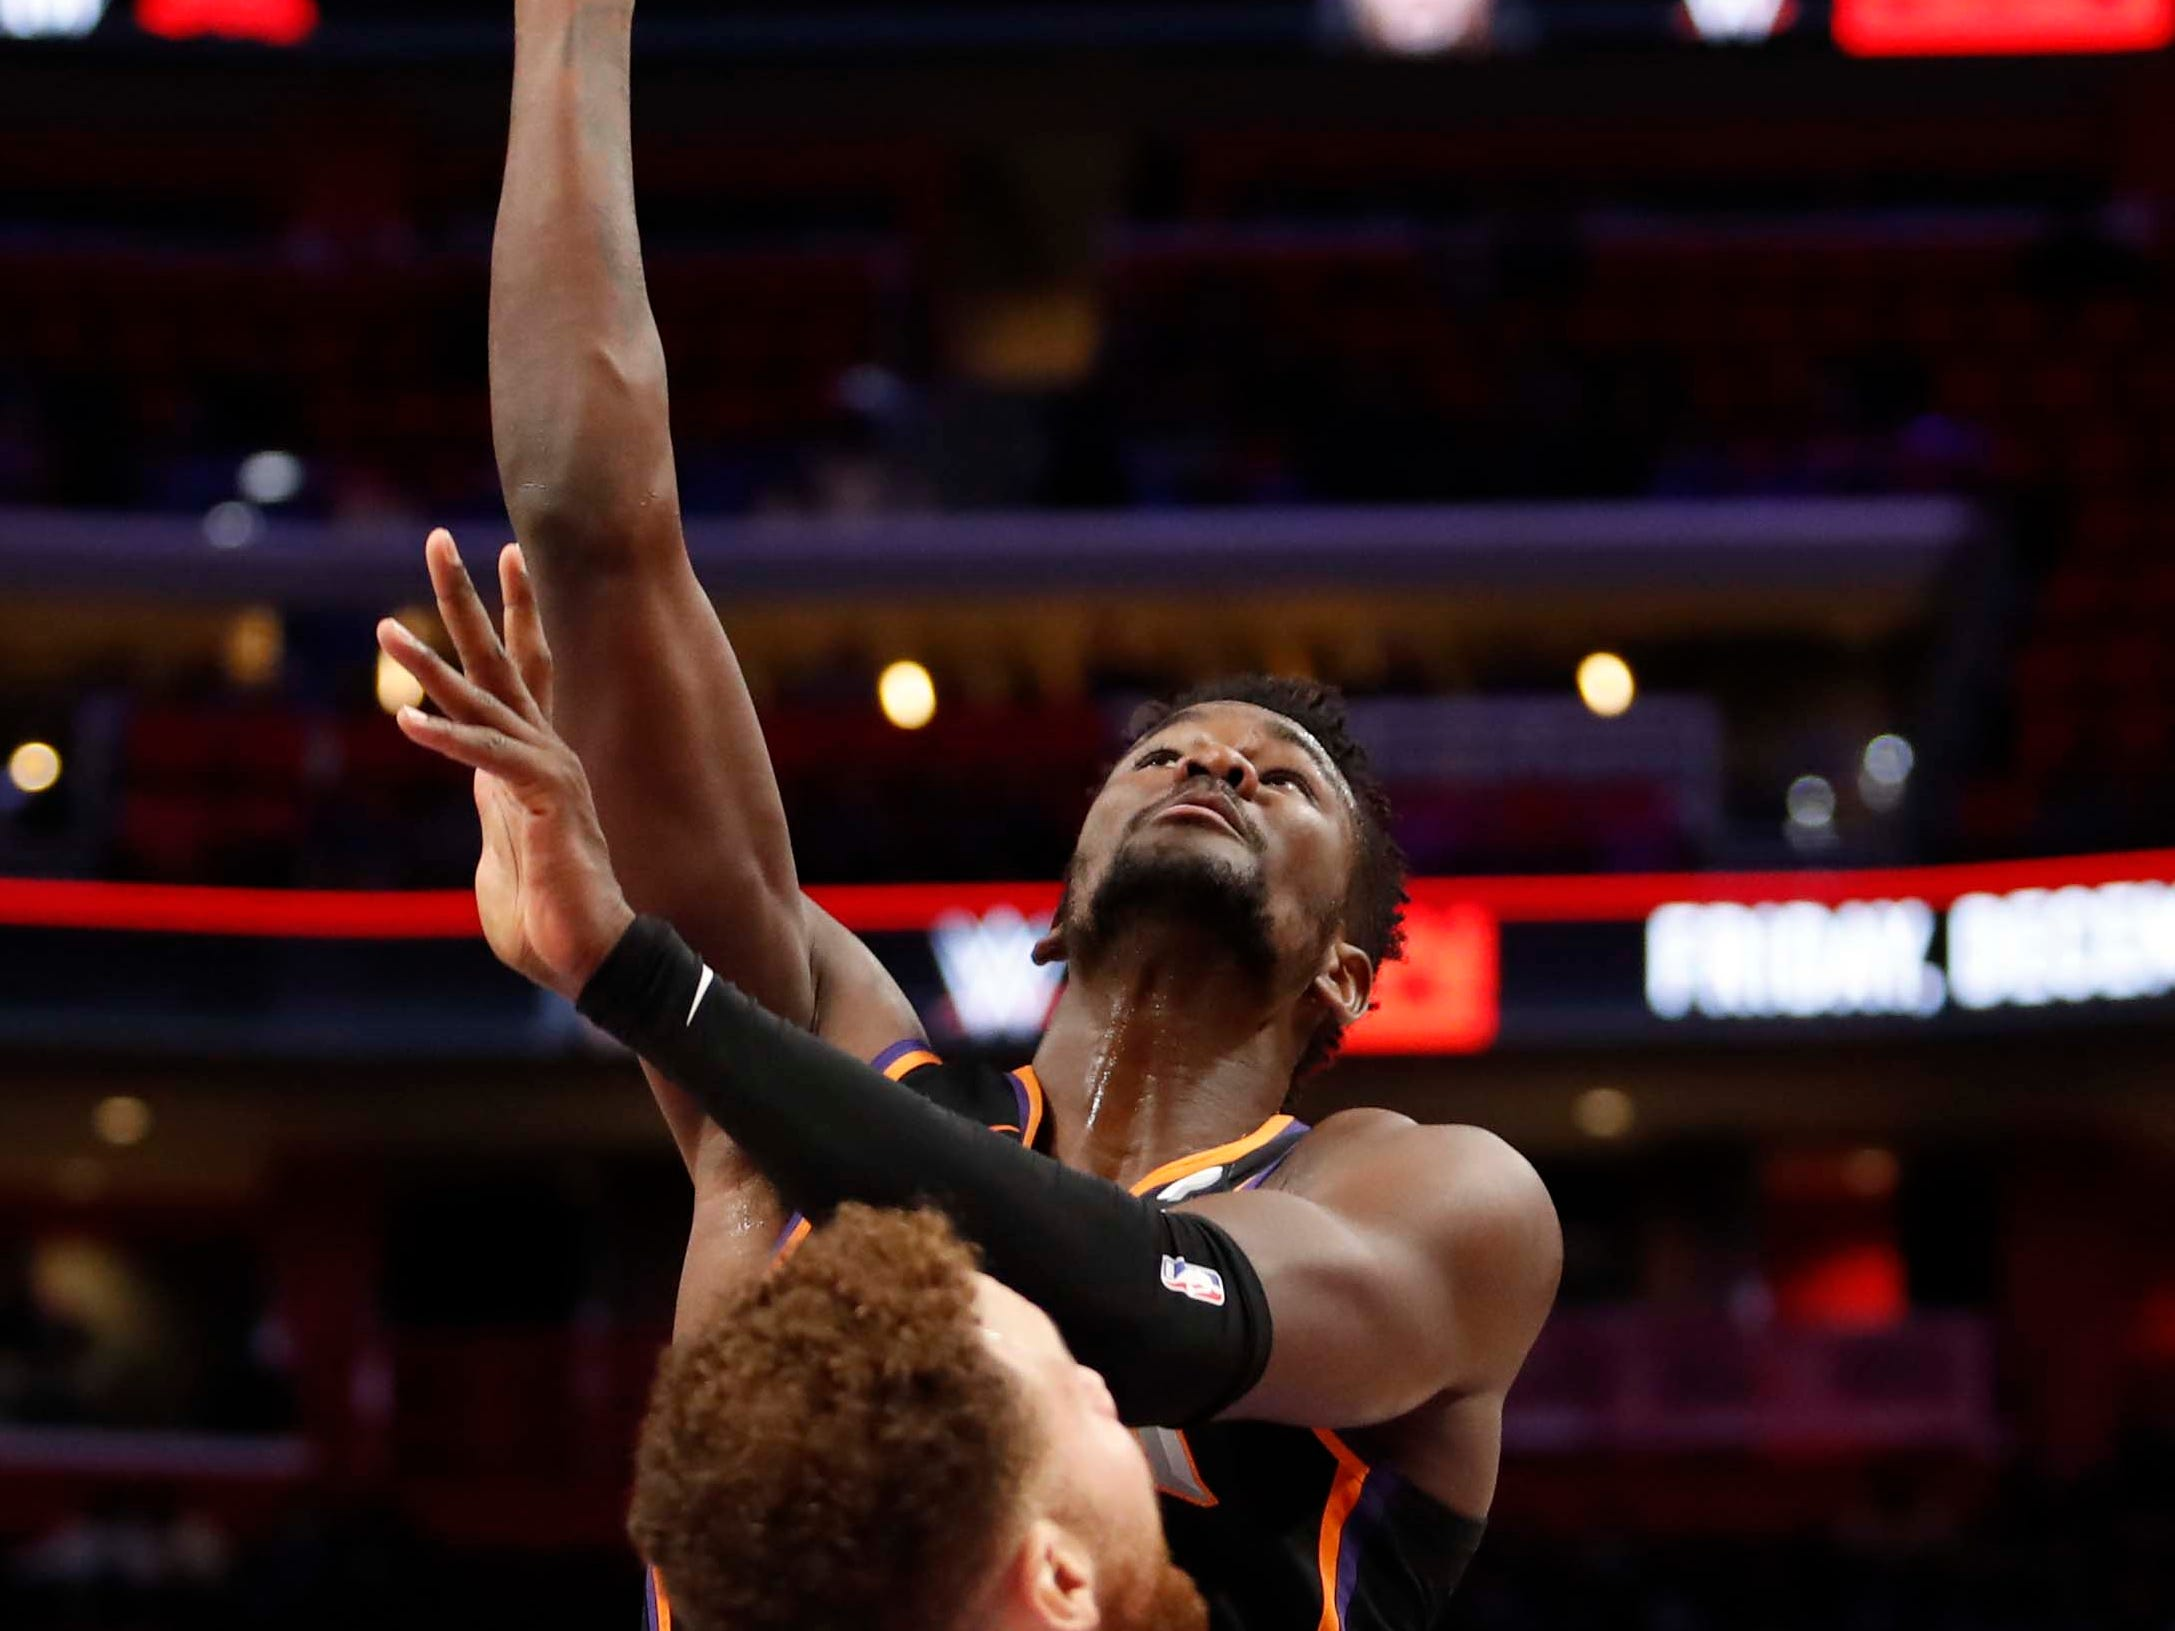 Nov 25, 2018; Detroit, MI, USA; Phoenix Suns center Deandre Ayton (22) takes a shot against Detroit Pistons forward Blake Griffin (23) during the third quarter at Little Caesars Arena. Mandatory Credit: Raj Mehta-USA TODAY Sports